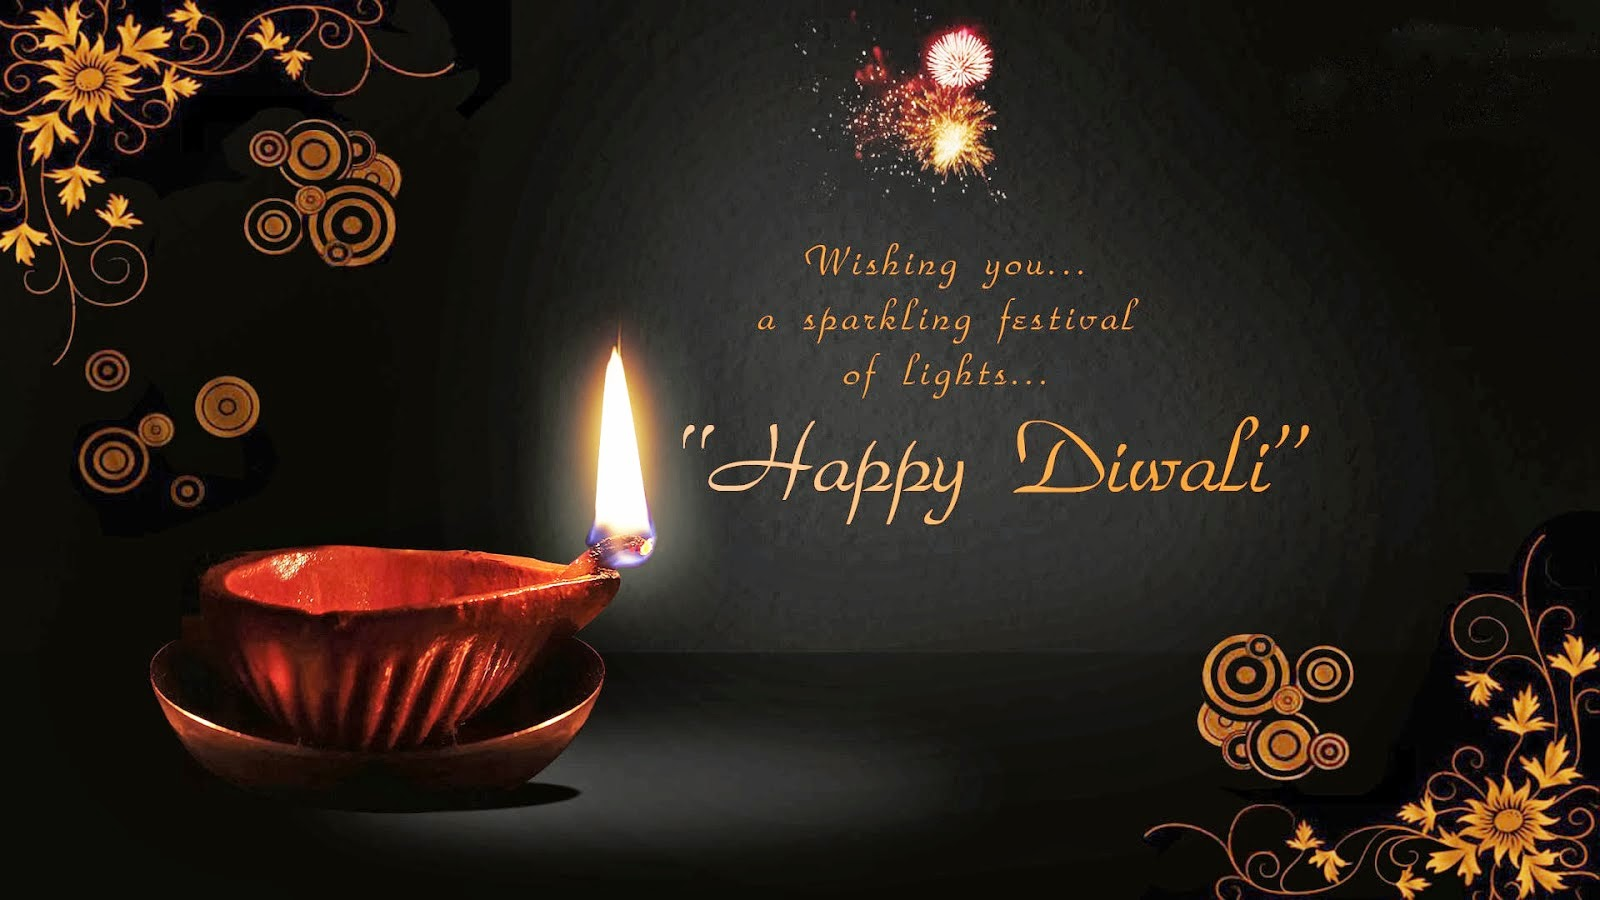 Happy diwali whatsapp fb dp crackers firework video images shubh deepavali happy diwali images wallpapers photos whatsapp fb dp crackers firework video 2015 m4hsunfo